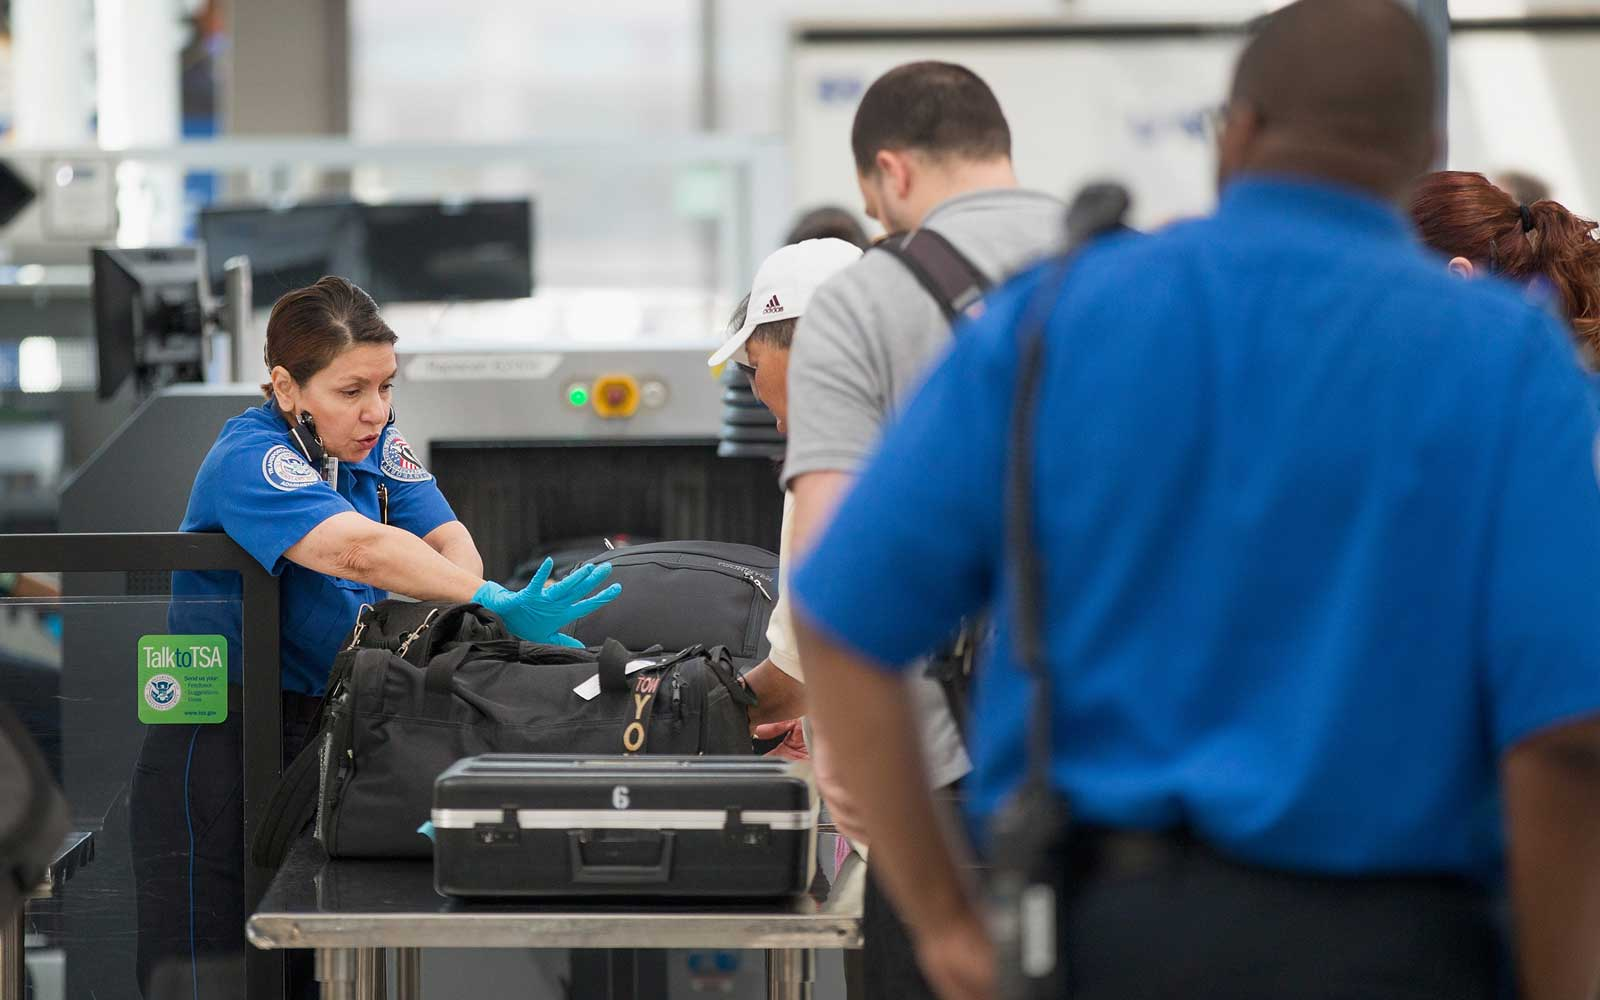 Why the TSA Asks Passengers to Remove Books From Carry-Ons